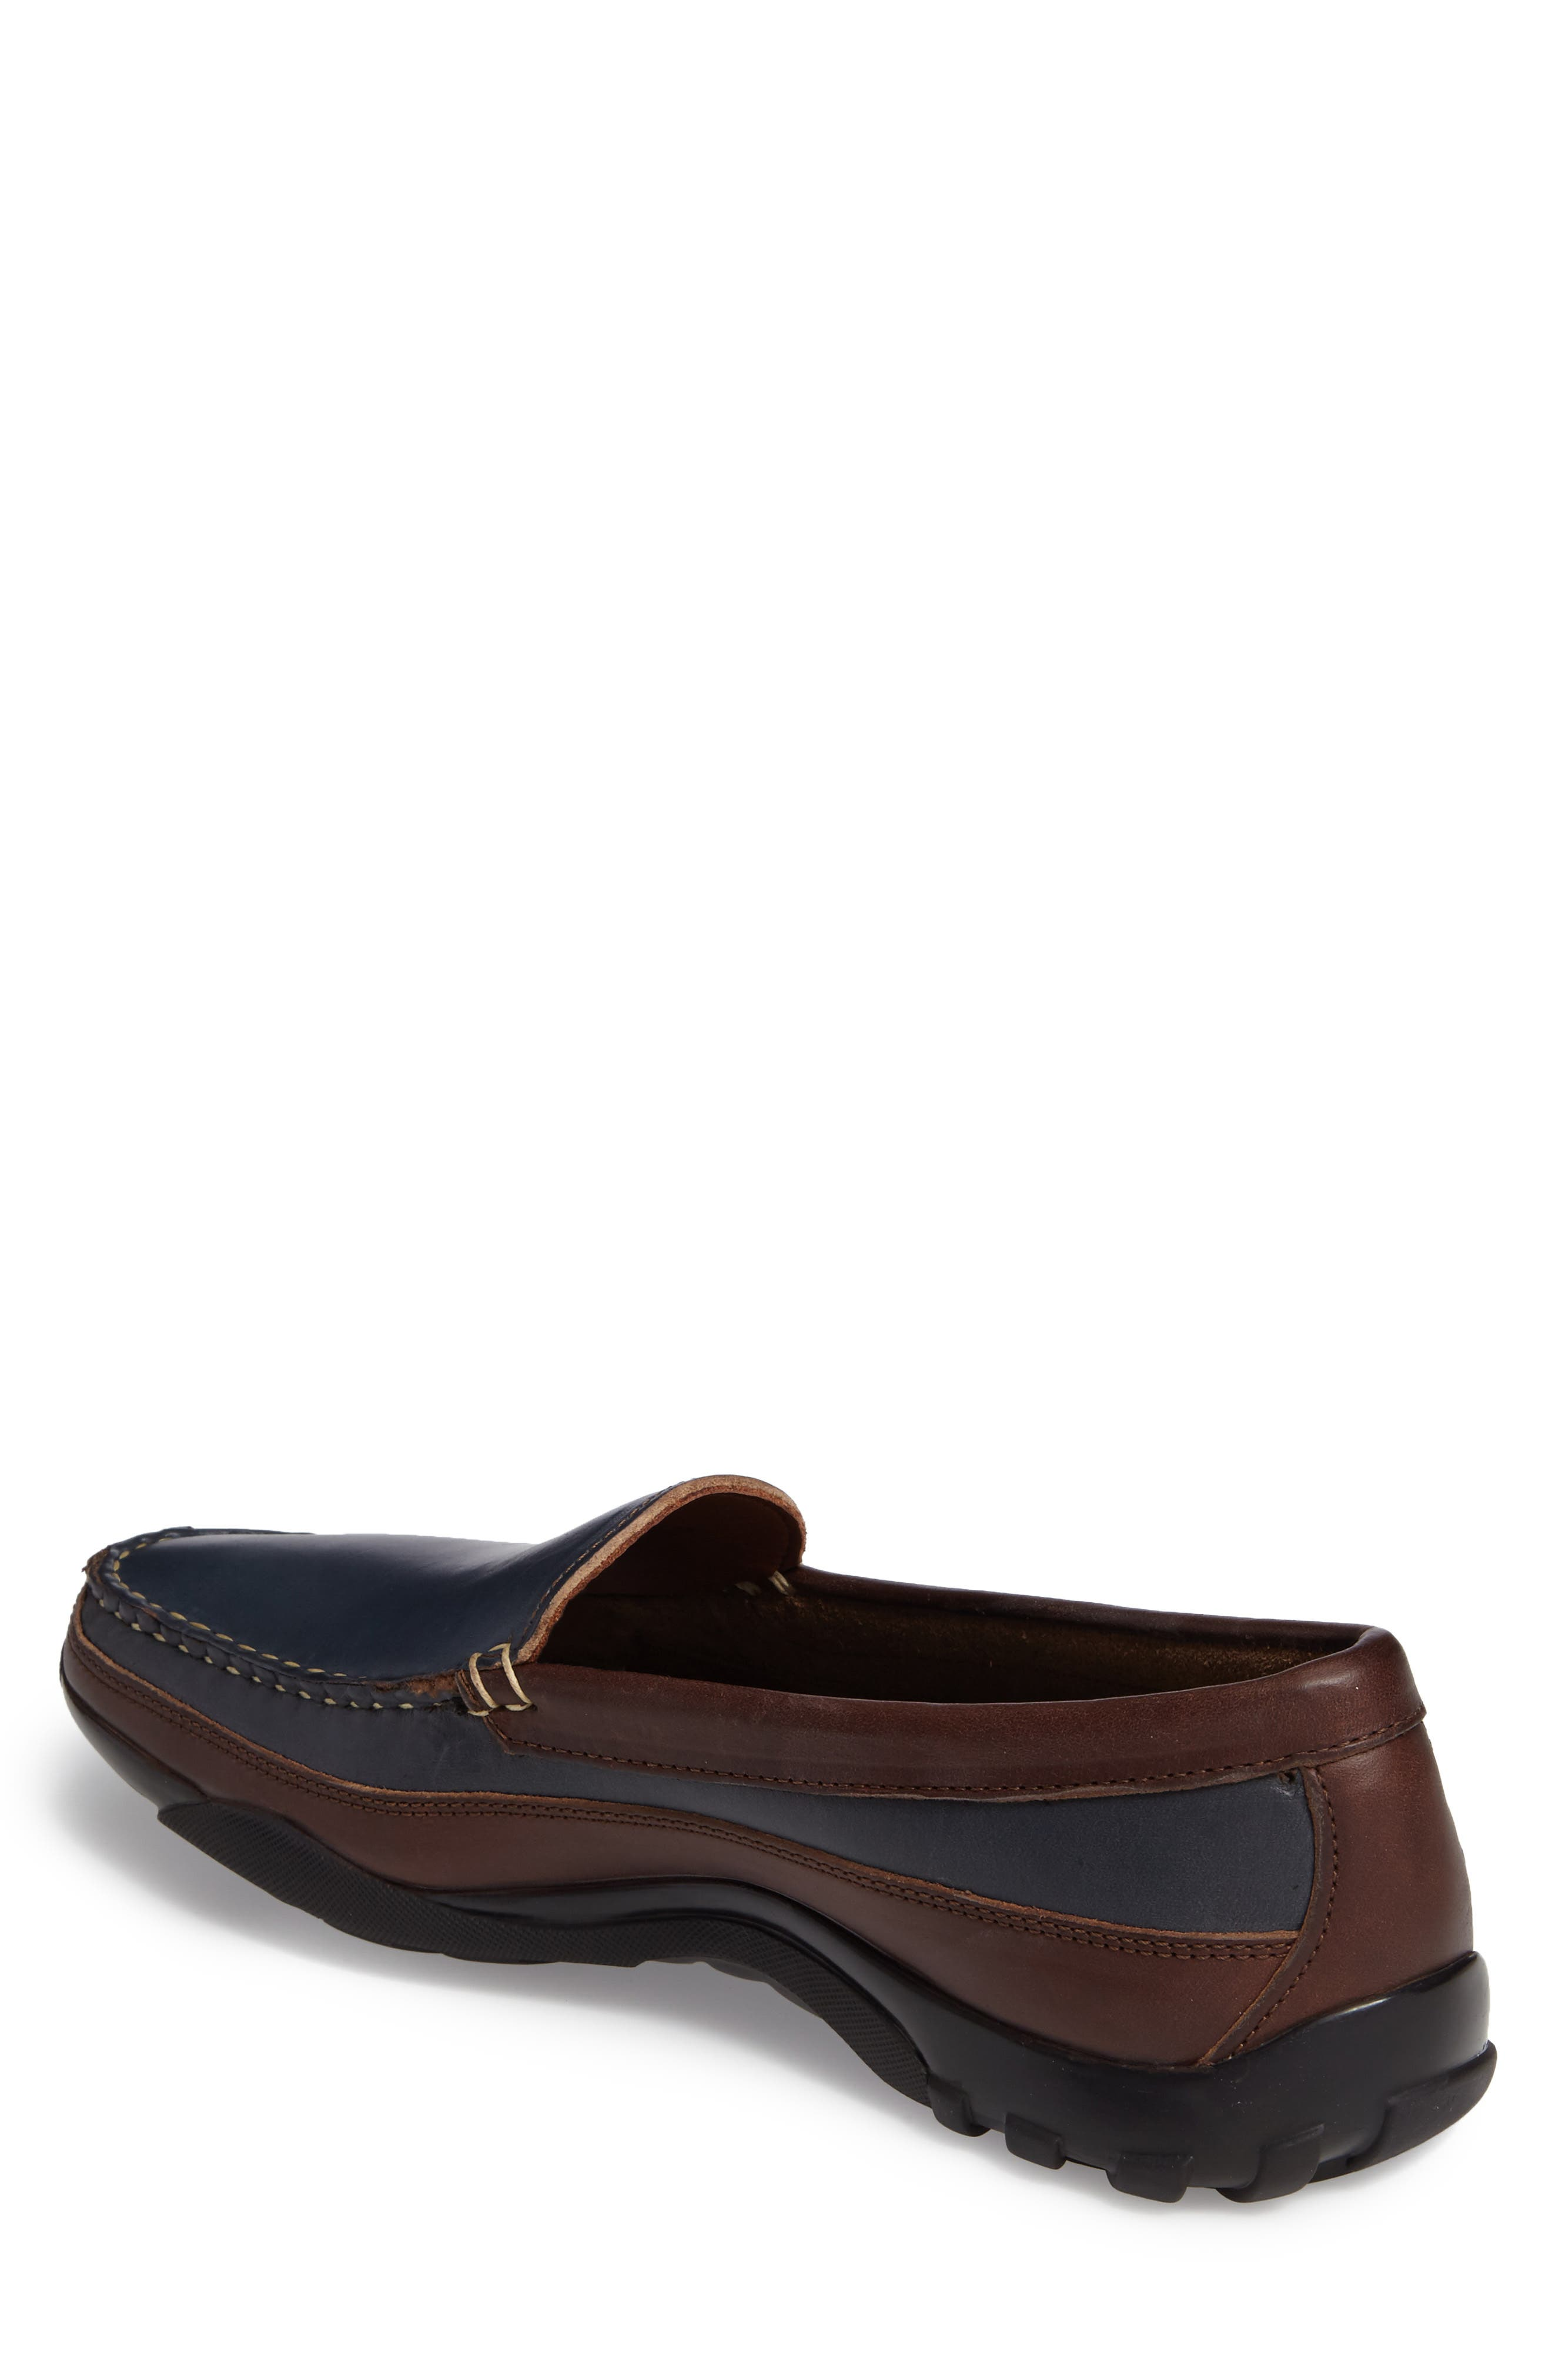 ALLEN EDMONDS, 'Boulder' Driving Loafer, Alternate thumbnail 2, color, NAVY/ BROWN